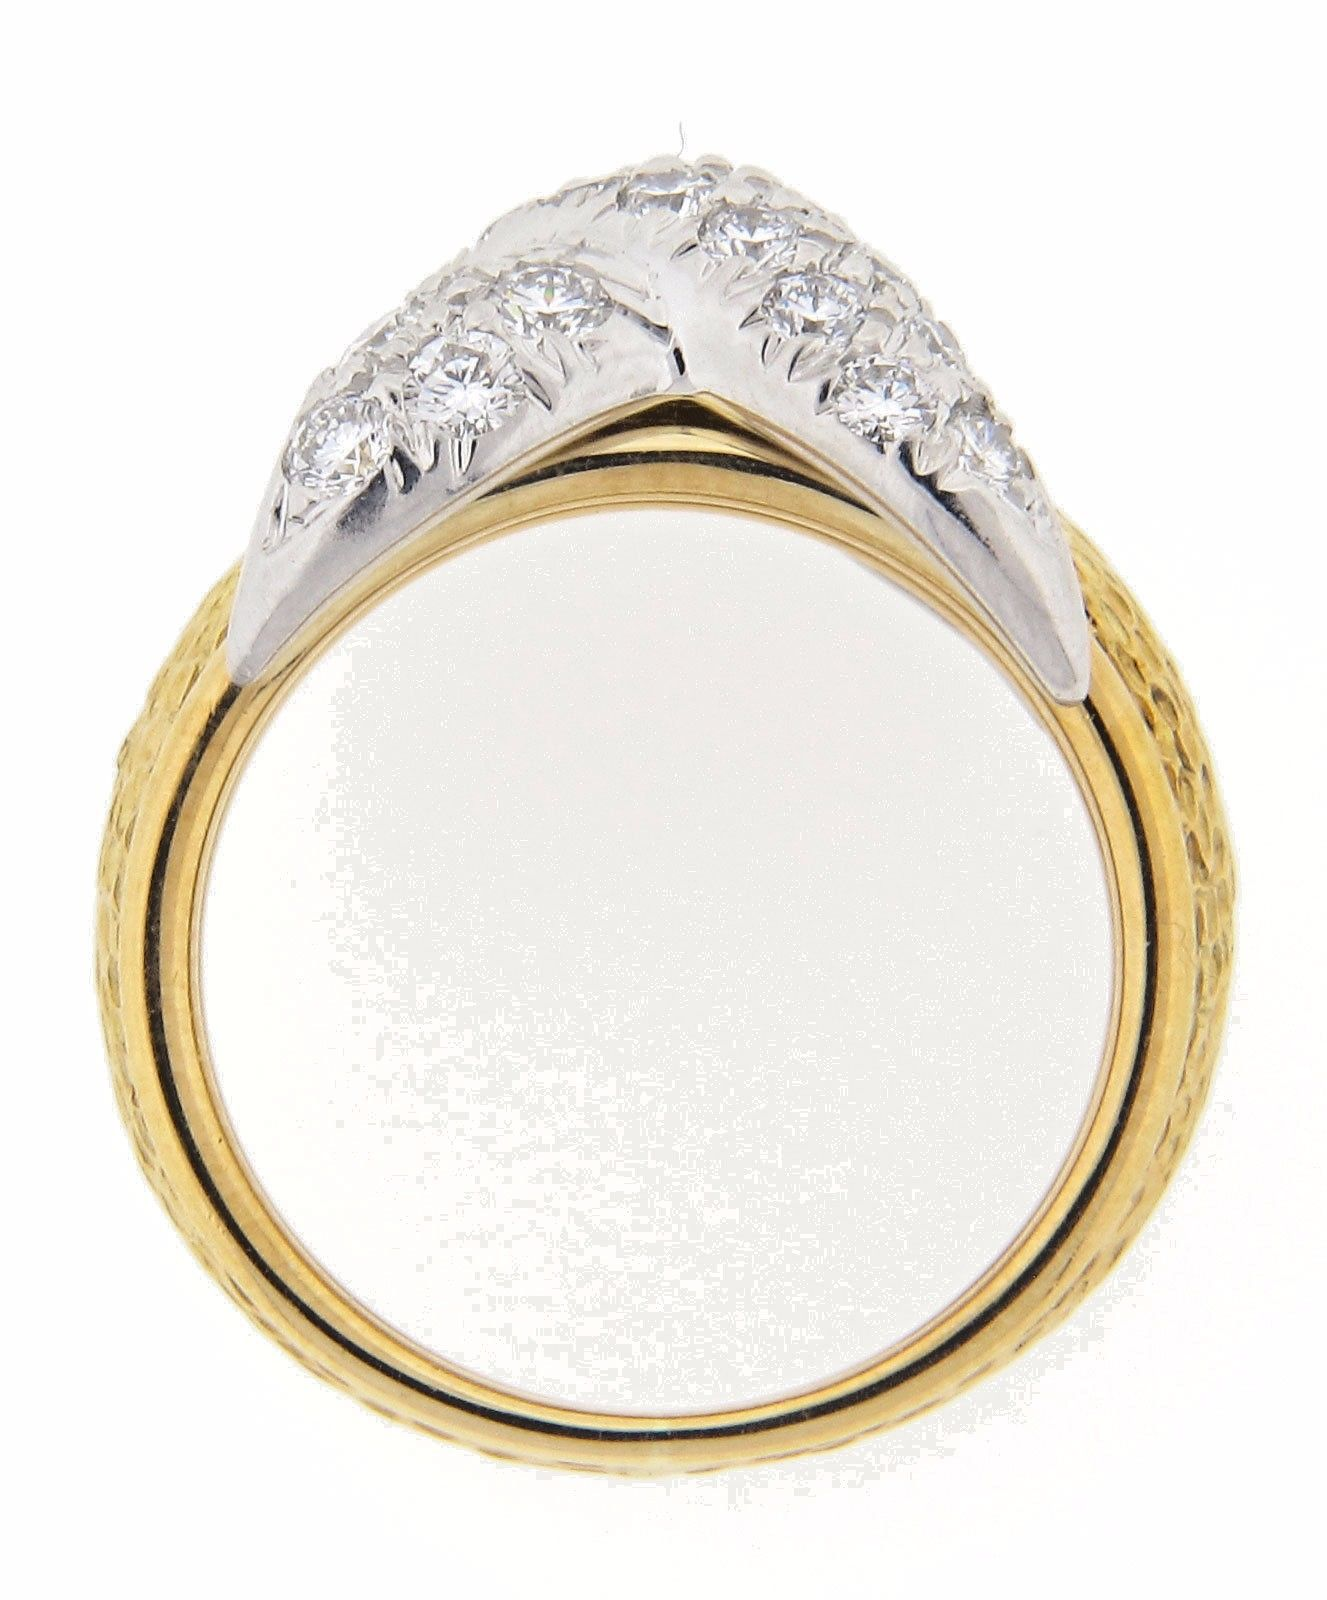 "Tiffany & Co. Schlumberger ""X"" Pave Diamond Ring with Bark Style Shank"